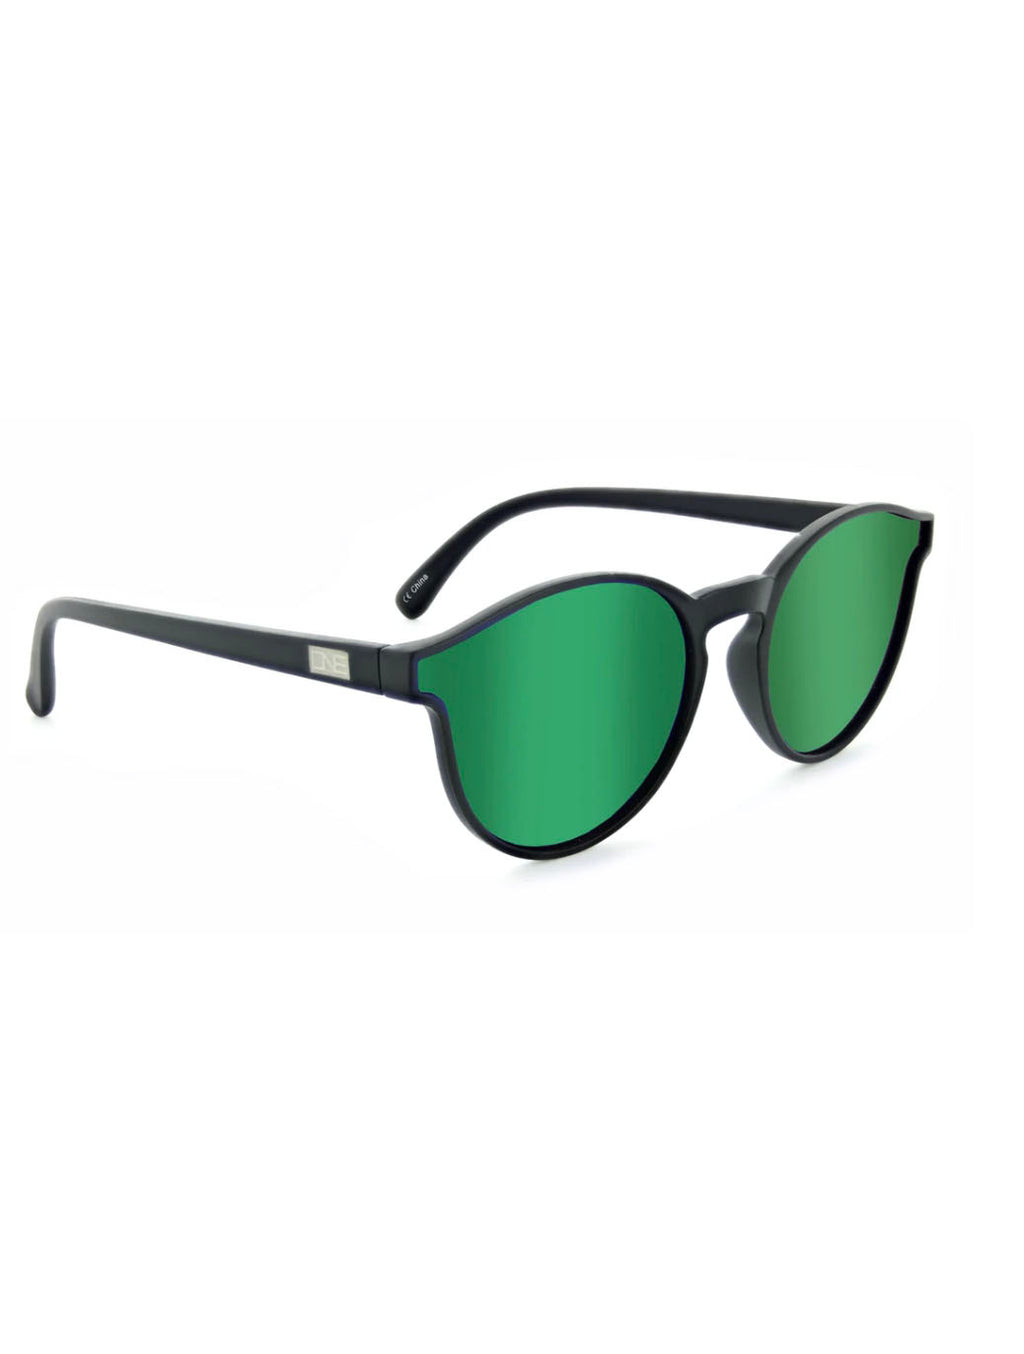 ONE Proviso Sunglasses in Matte Black